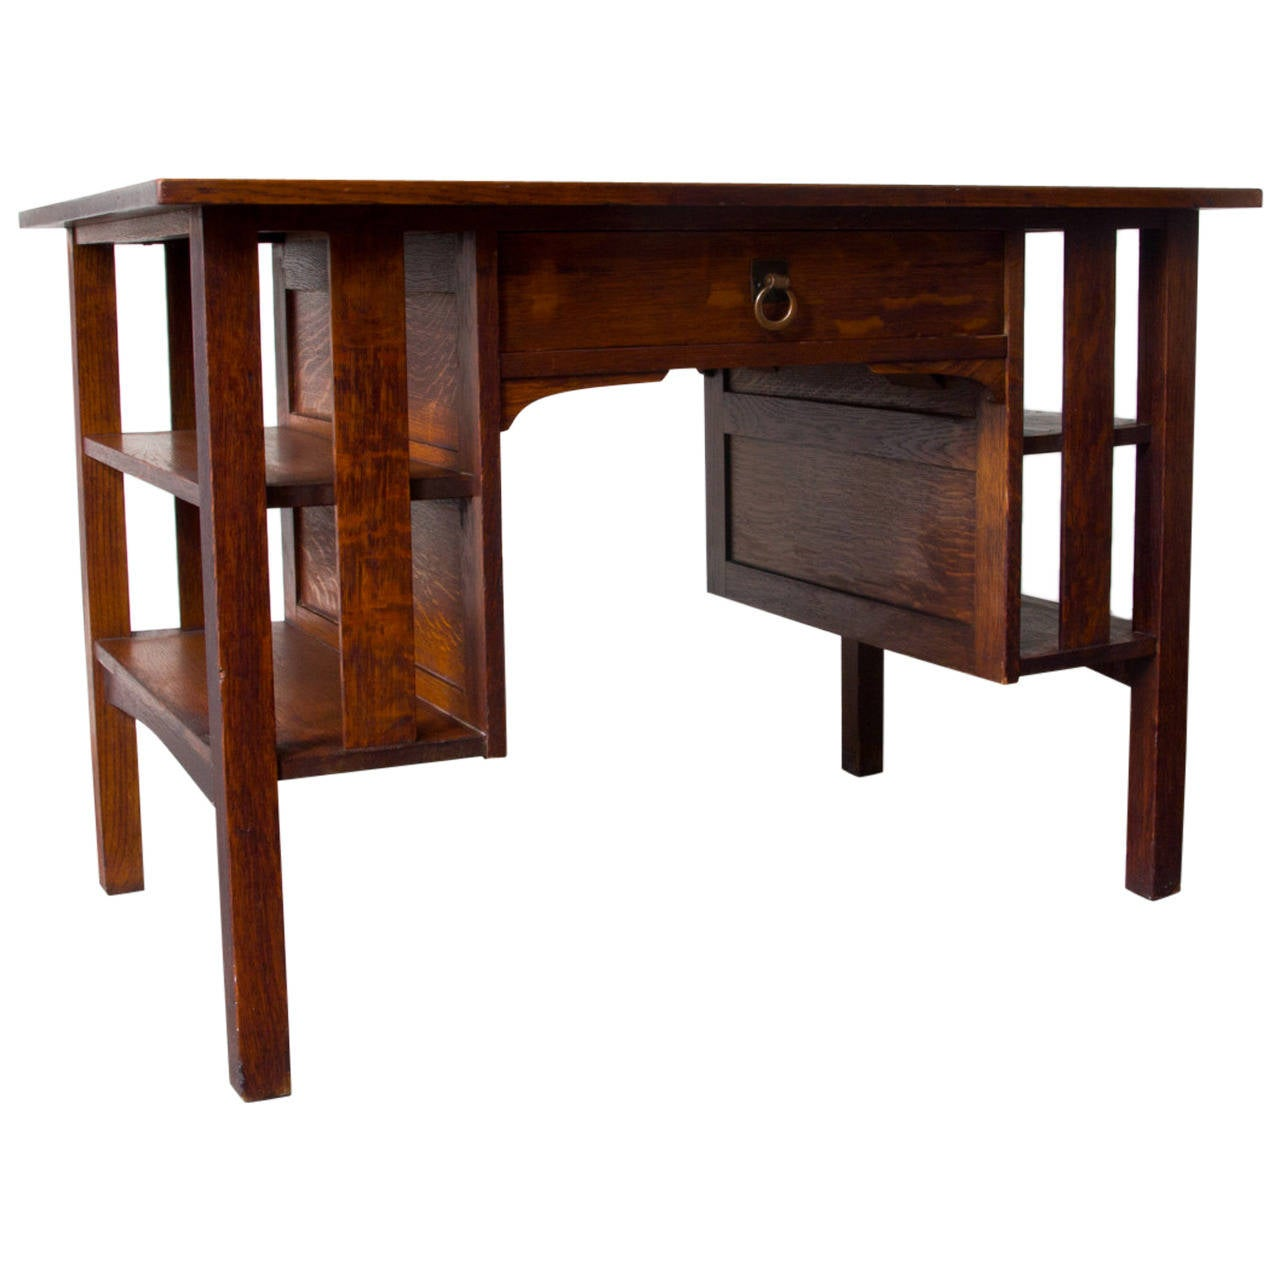 stickley furniture essay Shop for vintage furniture at auction from stickley, starting bids at $1 with over 16 lots available for antique stickley furniture and 10 upcoming auctions, you won't want to miss out.